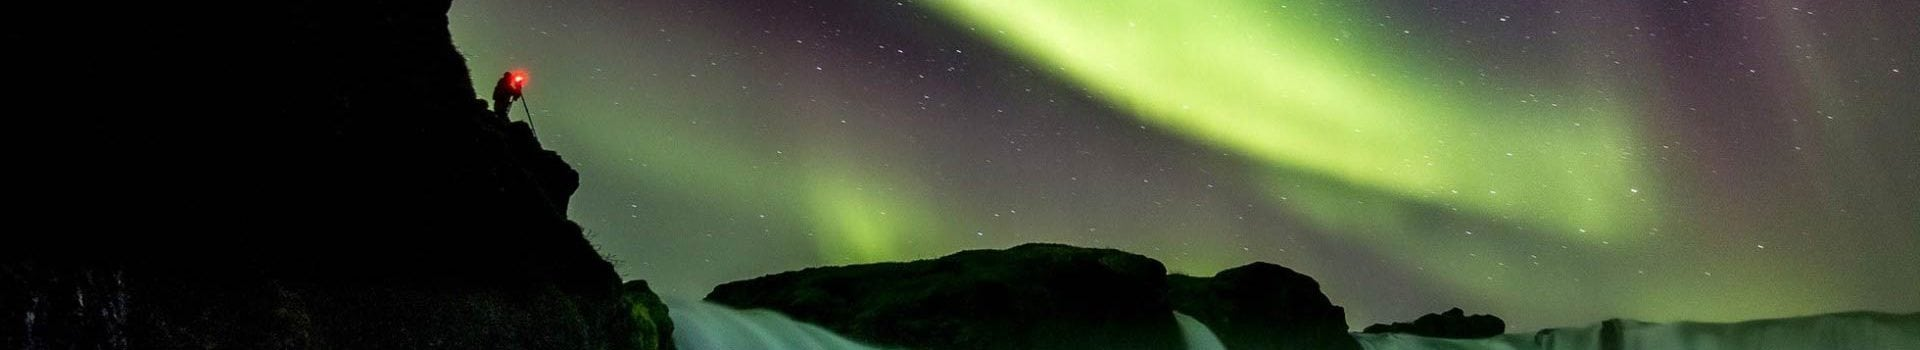 Photographer taking photos of the northern lights in the sky in Akureyri, Iceland